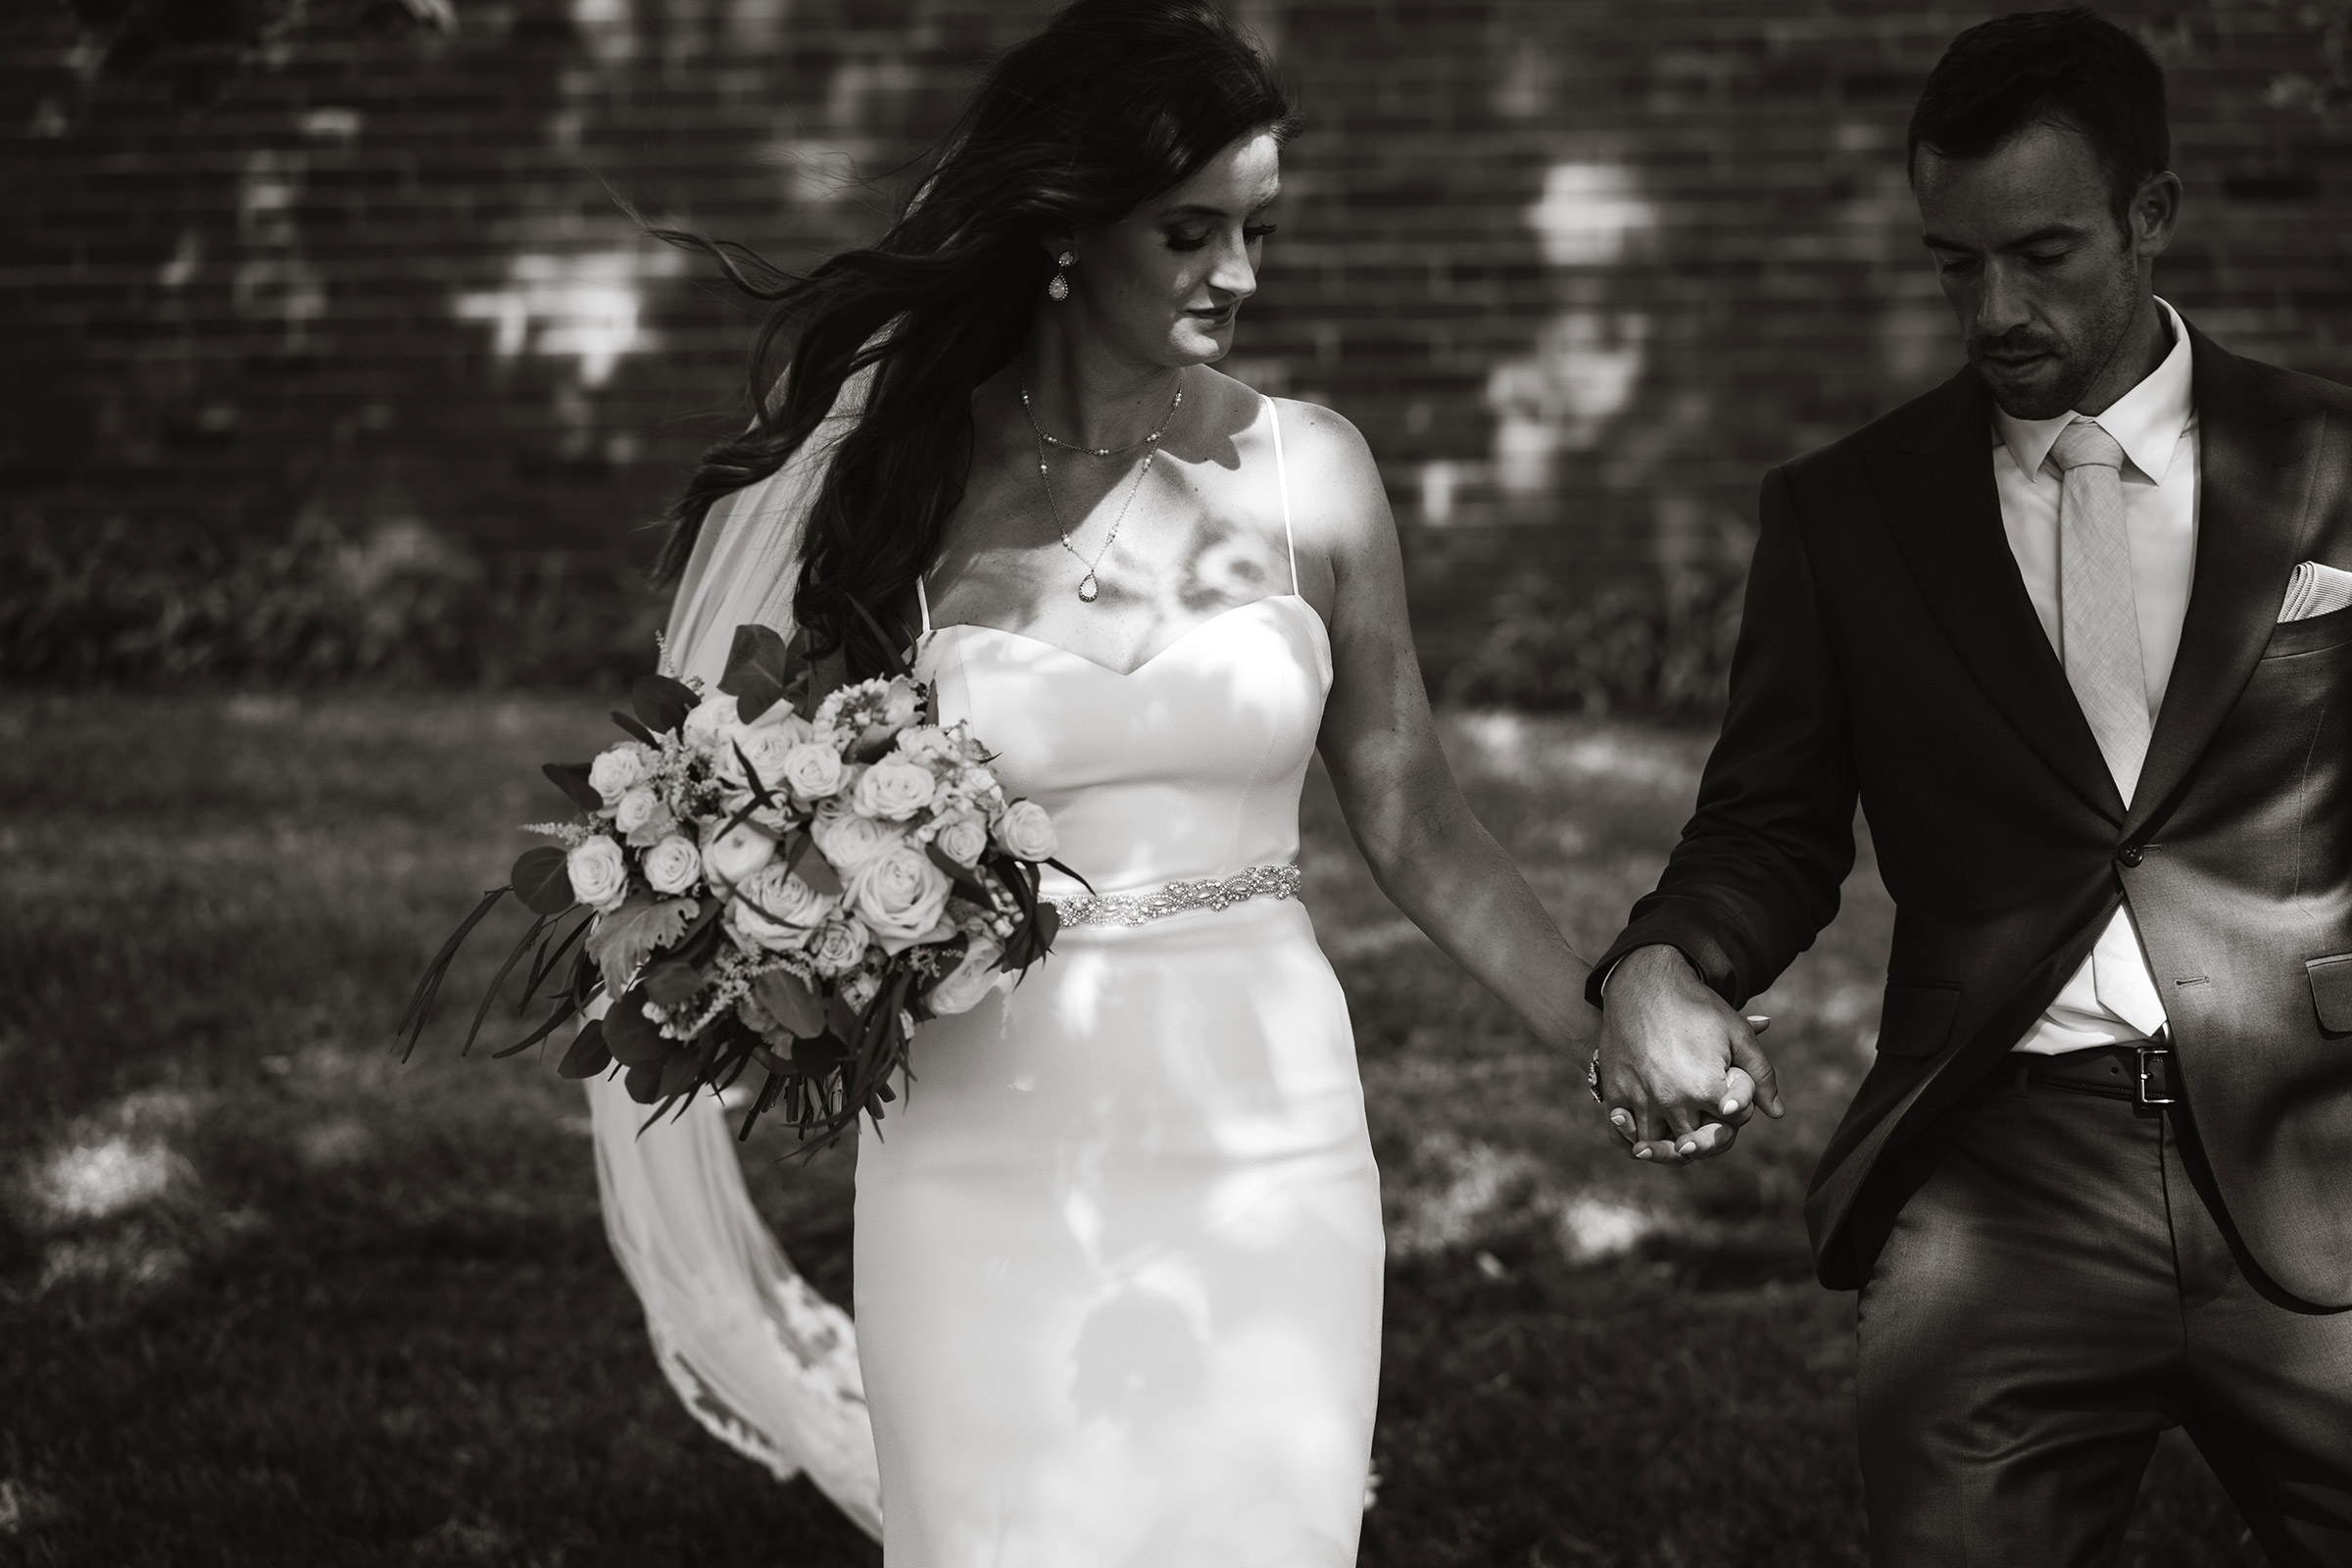 mr-mrs-hull-bride-and-groom-walking-holding-hands-desmoines-iowa-raelyn-ramey-photography-443.jpg